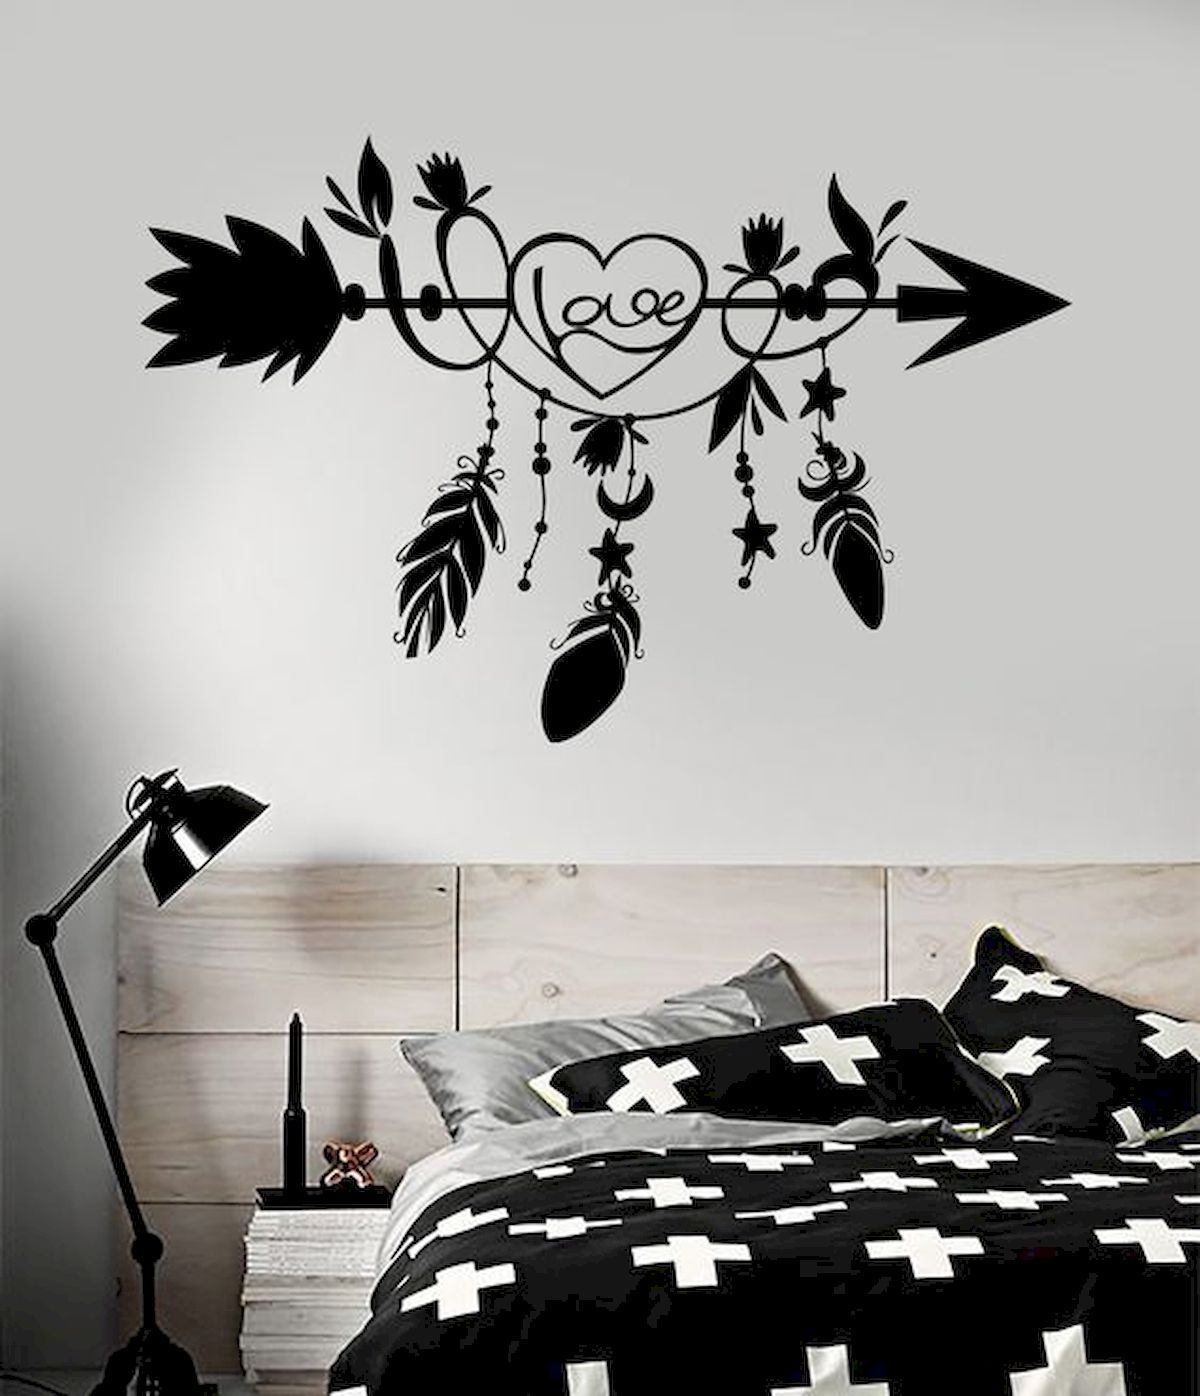 Gorgeous 44 Awesome Wall Painting Ideas To Decorate Your Home Source Https House8055 Com 44 Aw Wall Decals For Bedroom Bedroom Wall Paint Diy Wall Painting